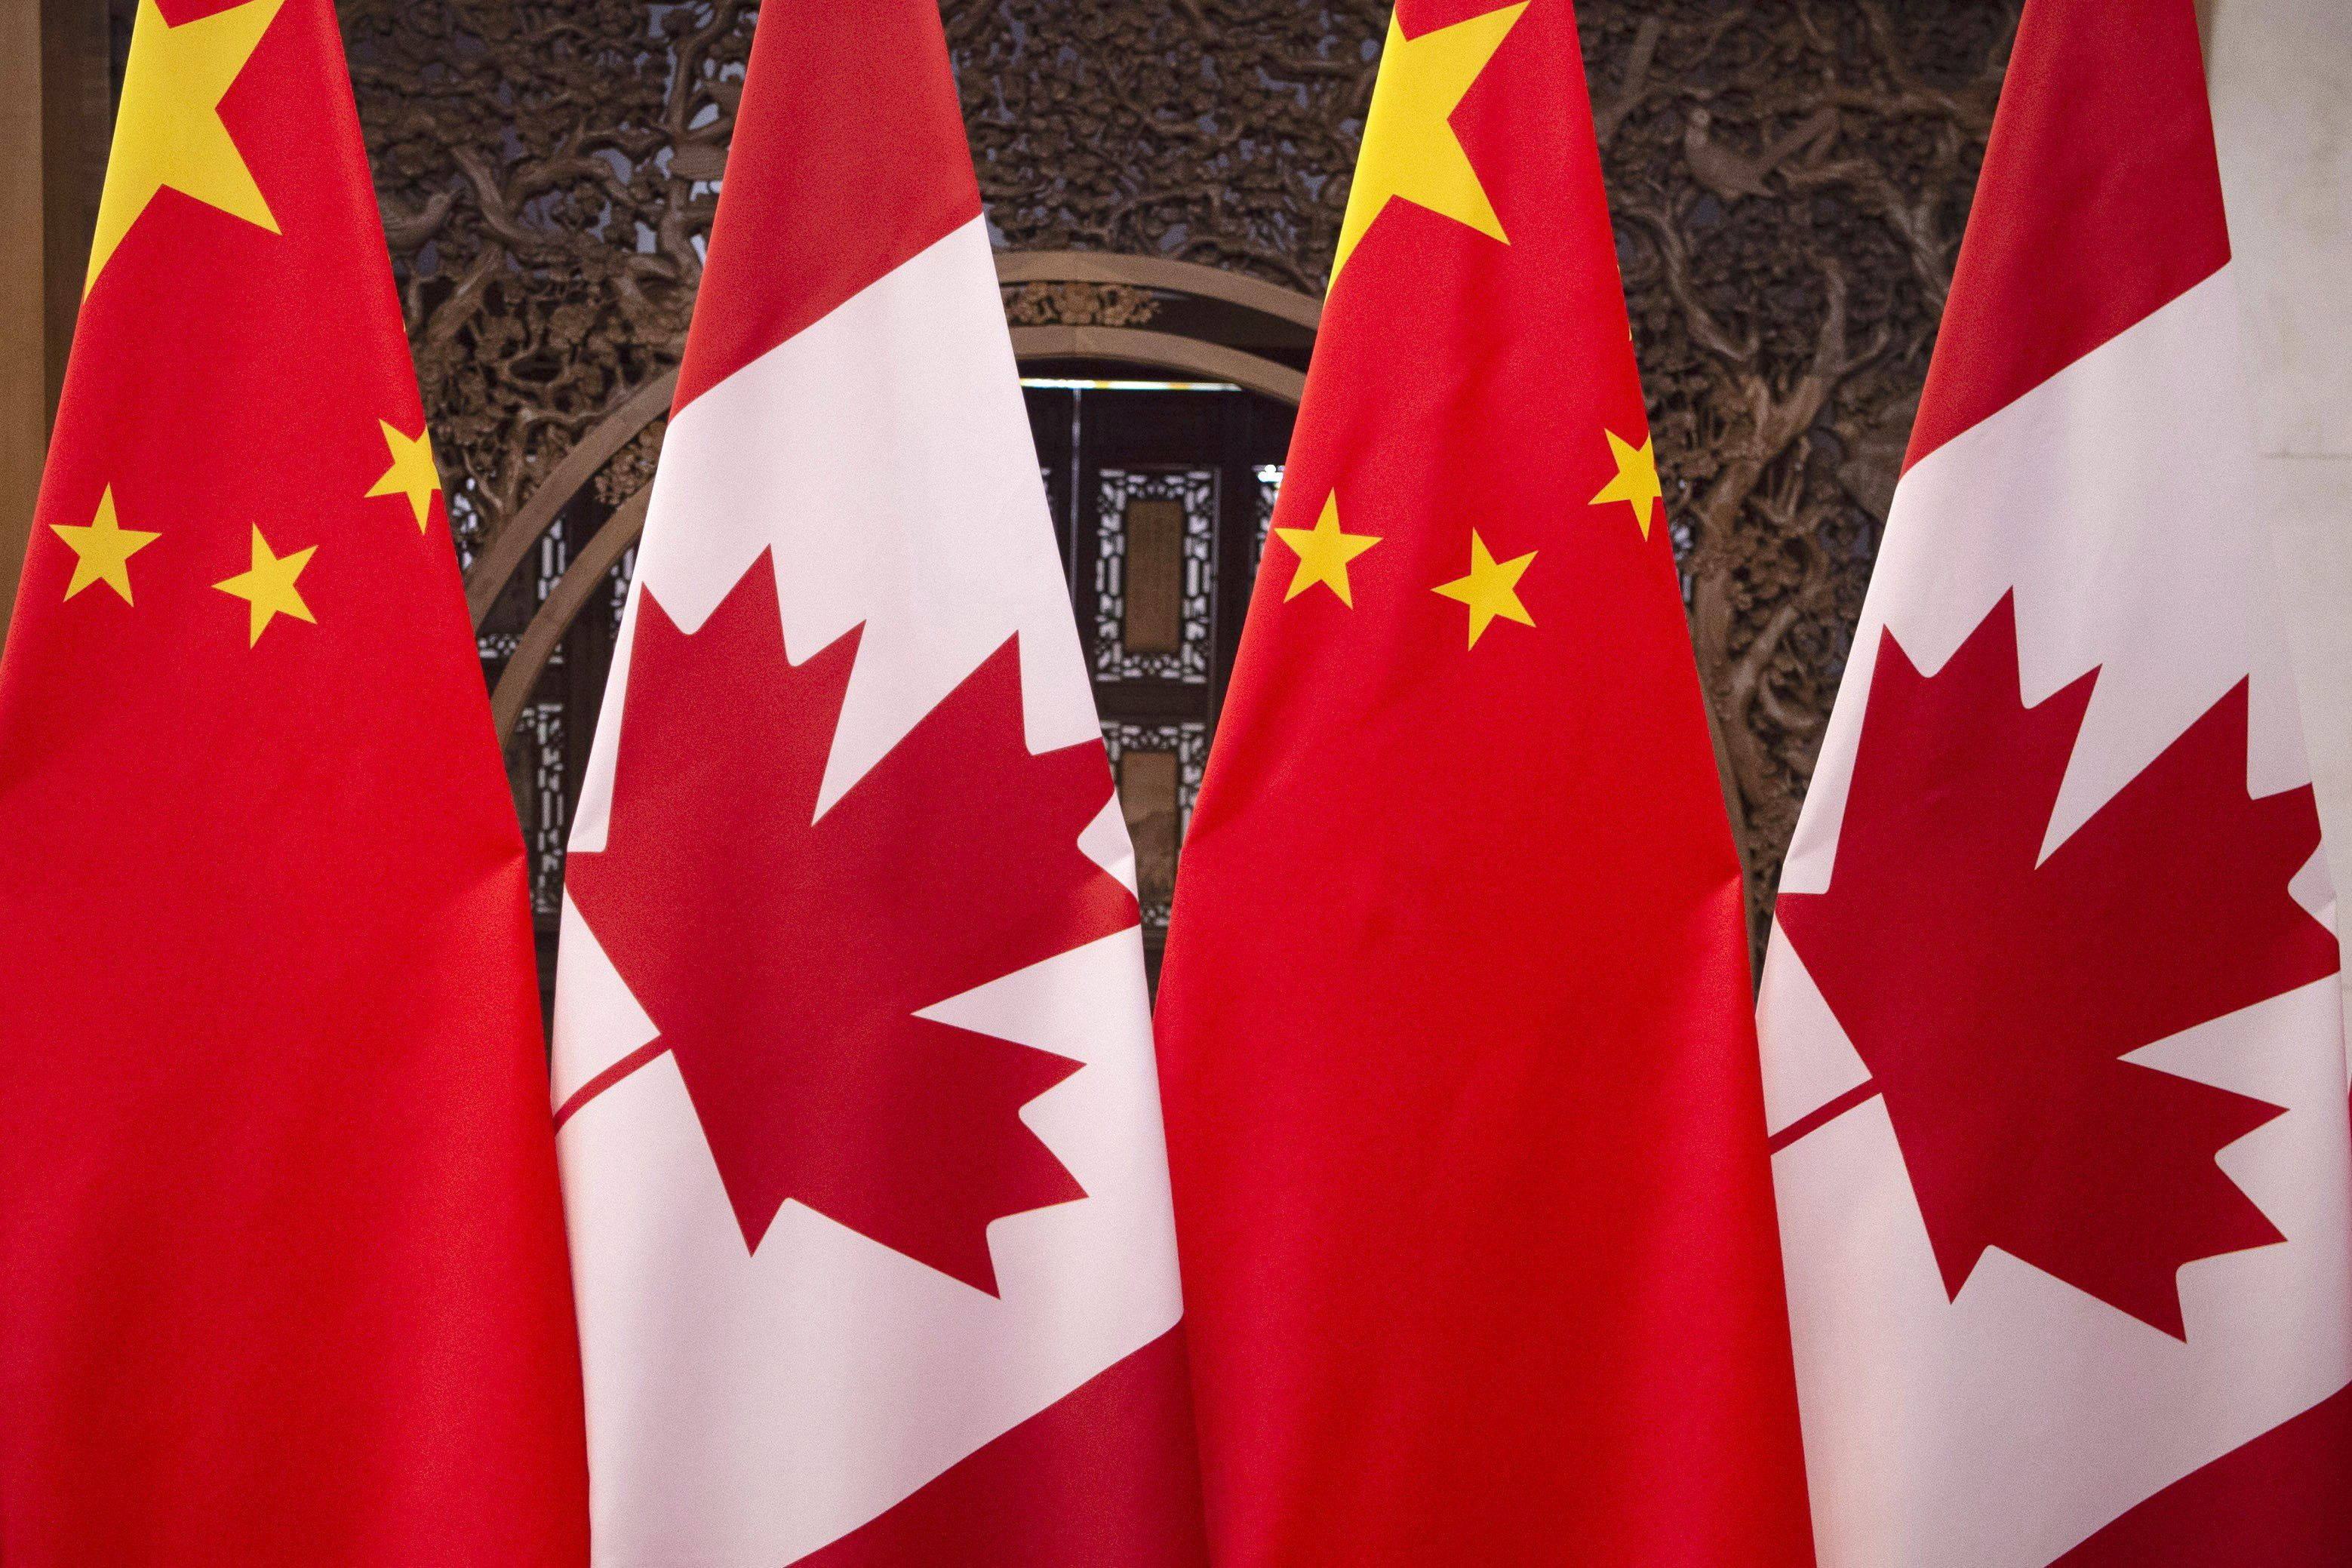 Chinese ambassador says up to Canada to unfreeze diplomatic relations